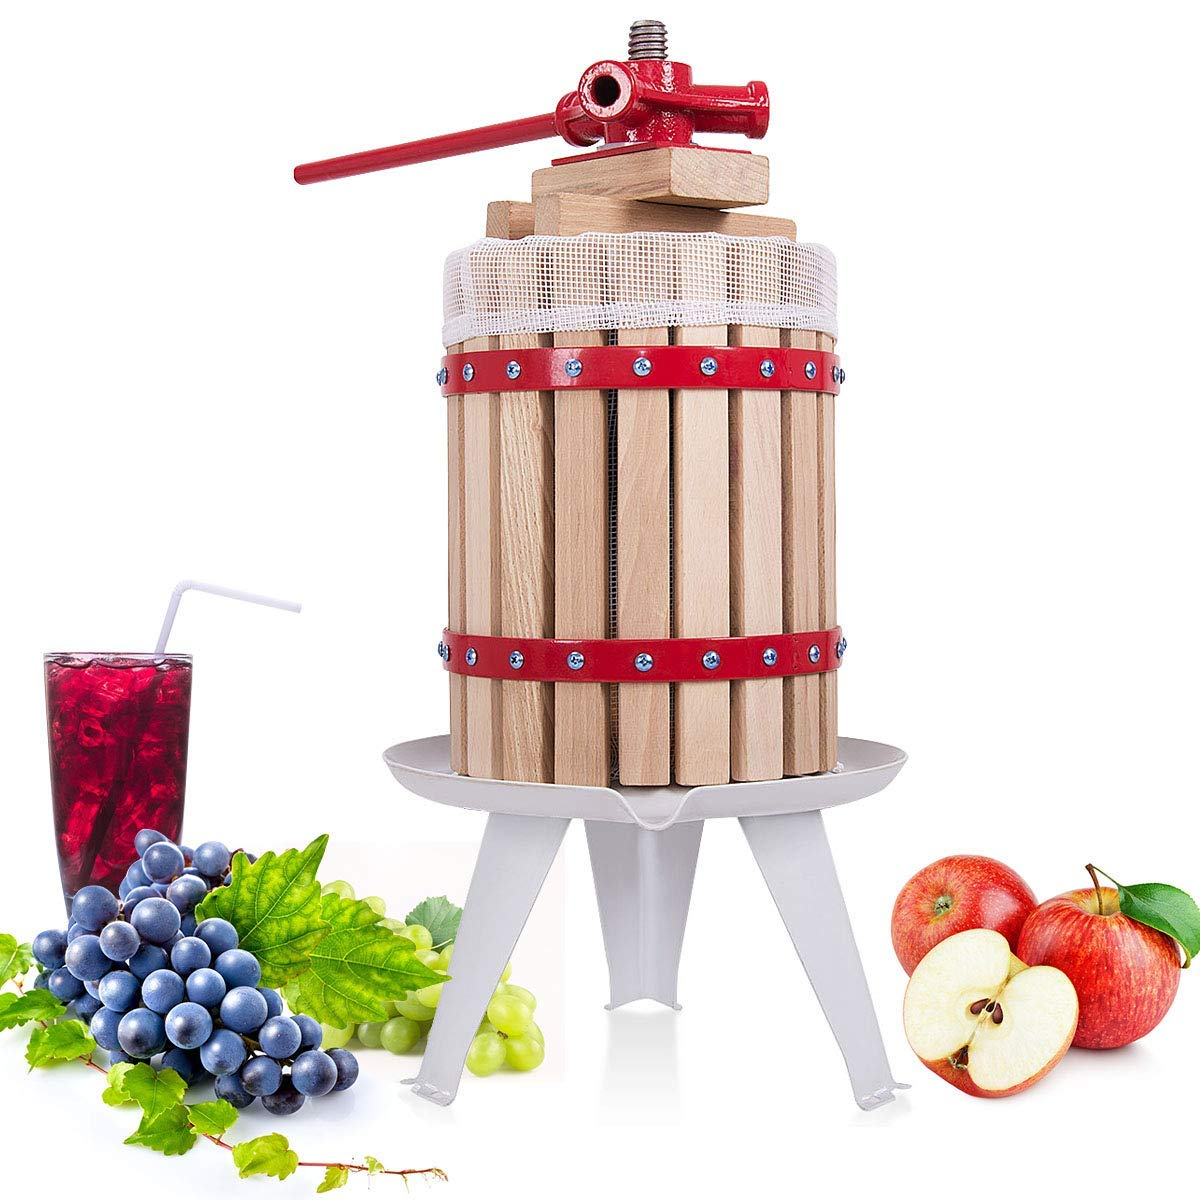 Costzon Fruit and Wine Press, 1.6 Gallon /6 Liter Solid Wood Basket, Cider Apple Grape Crusher Juice Maker for Kitchen, Energy-Saving, Easy to Assembly and Carrying (22) by Costzon